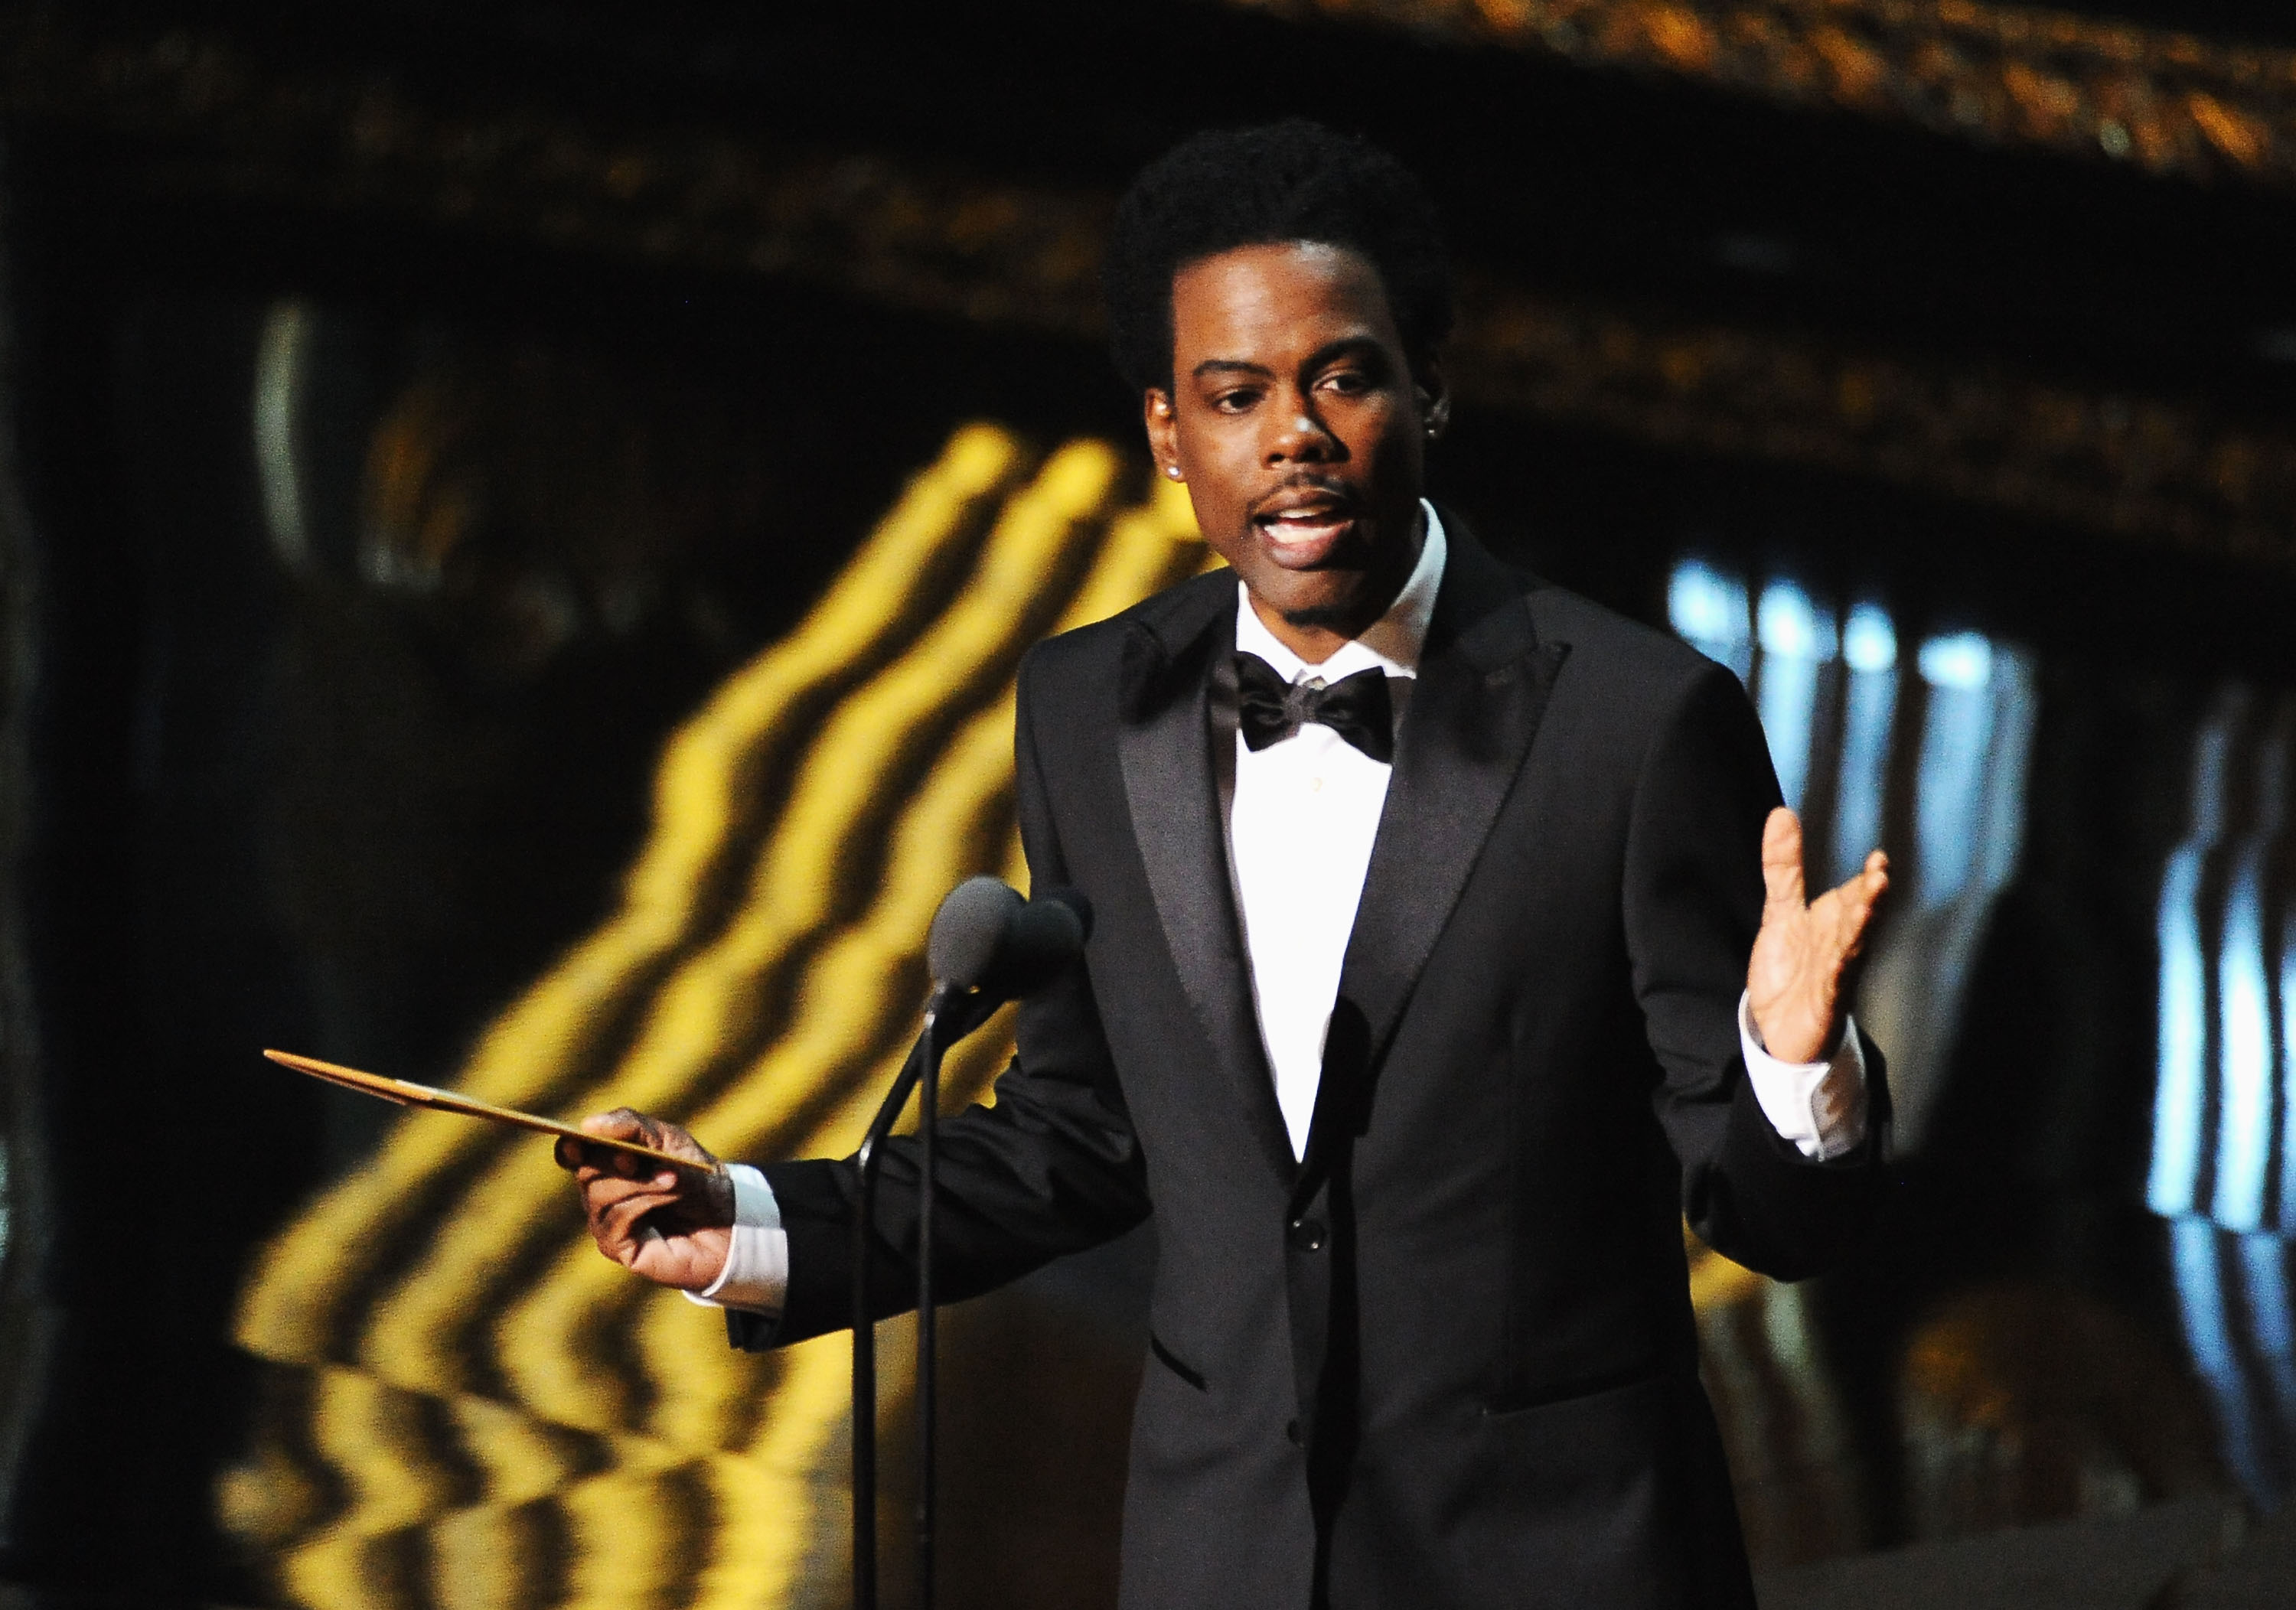 Chris Rock presenting at the Academy Awards in 2012.